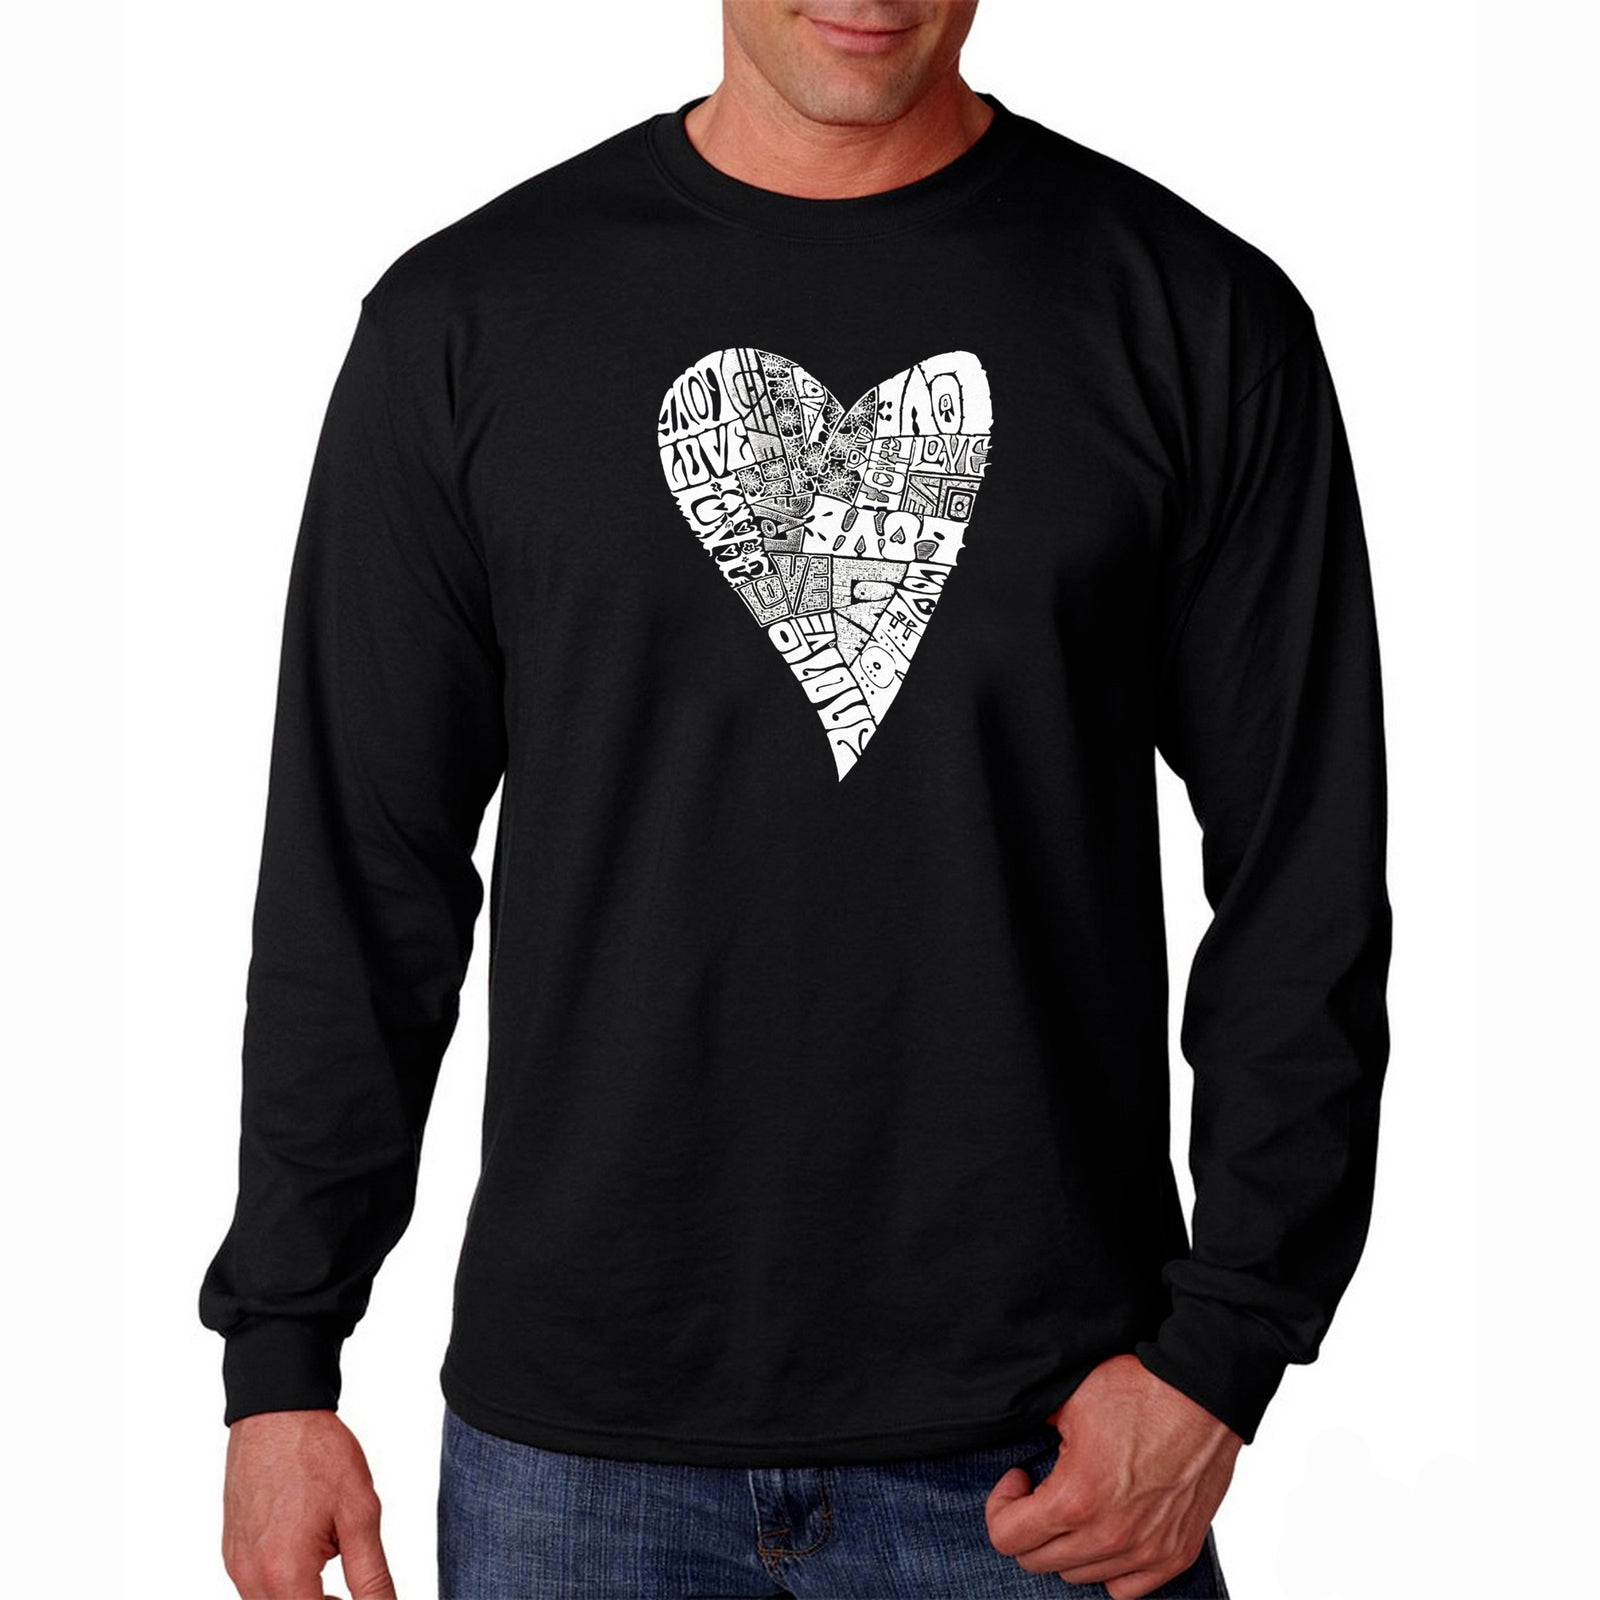 Men's Long Sleeve T-shirt - Lots of Love